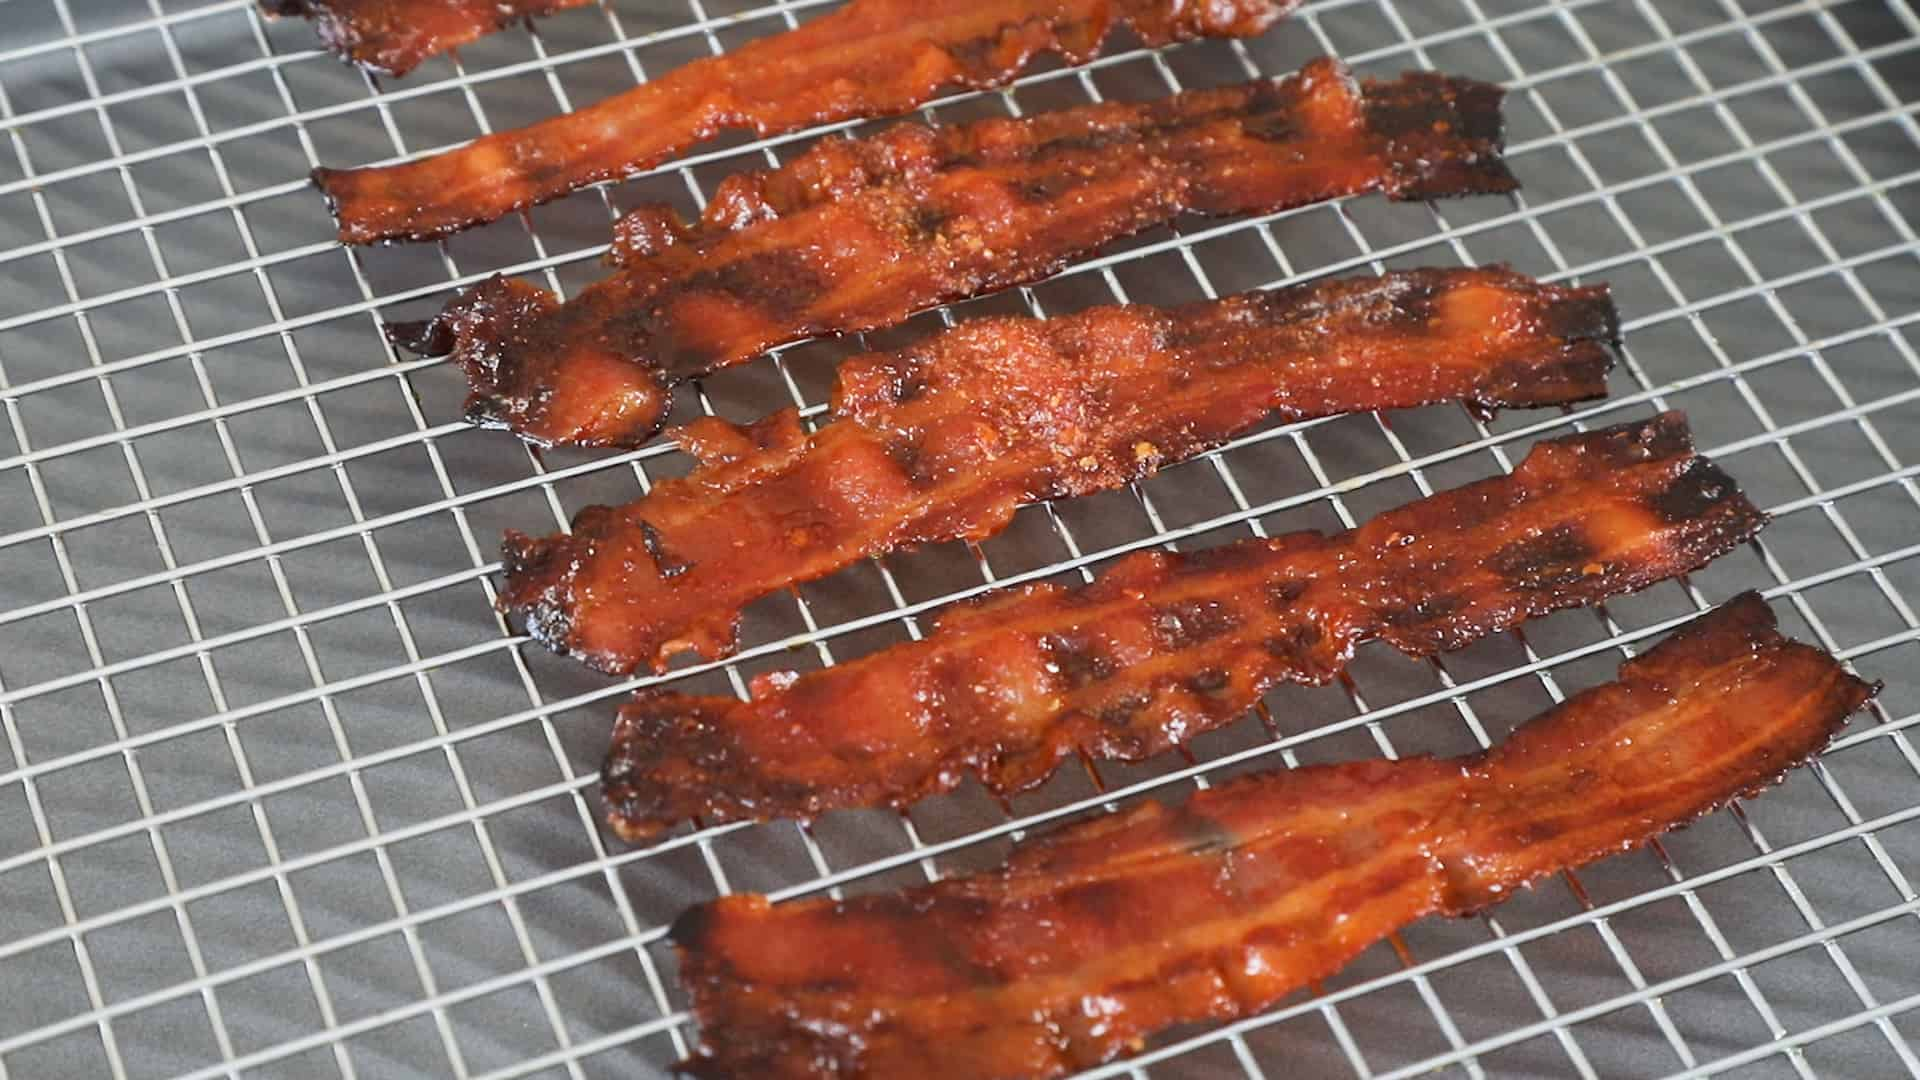 Ghost Pepper Candied Bacon - On a cooling rack